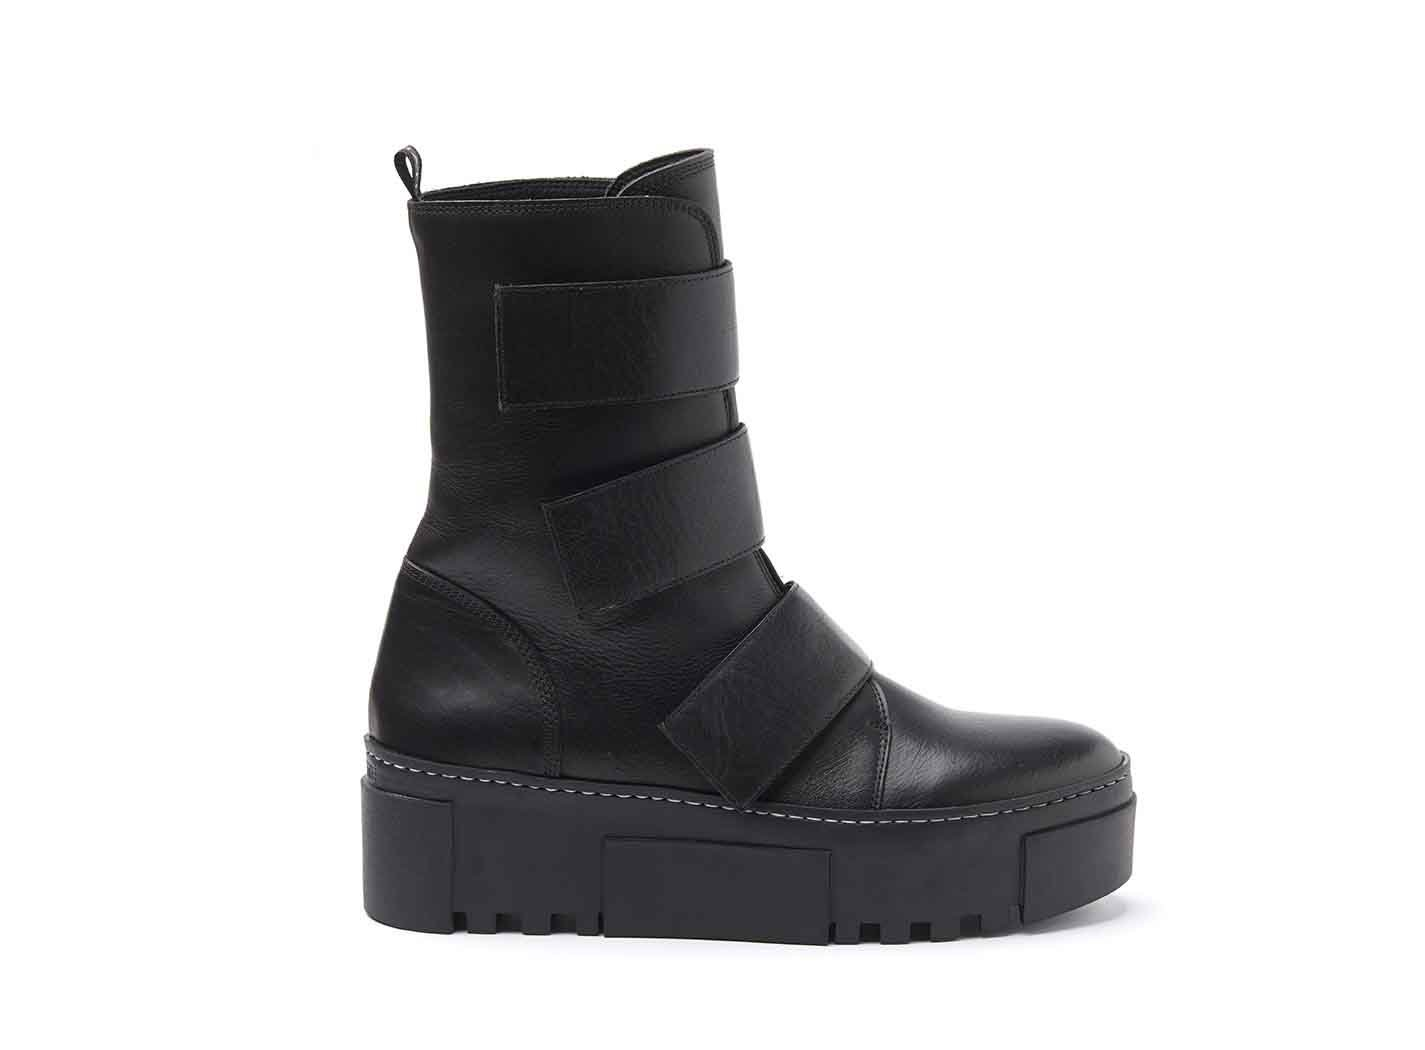 Military Boots With Velcro Straps And